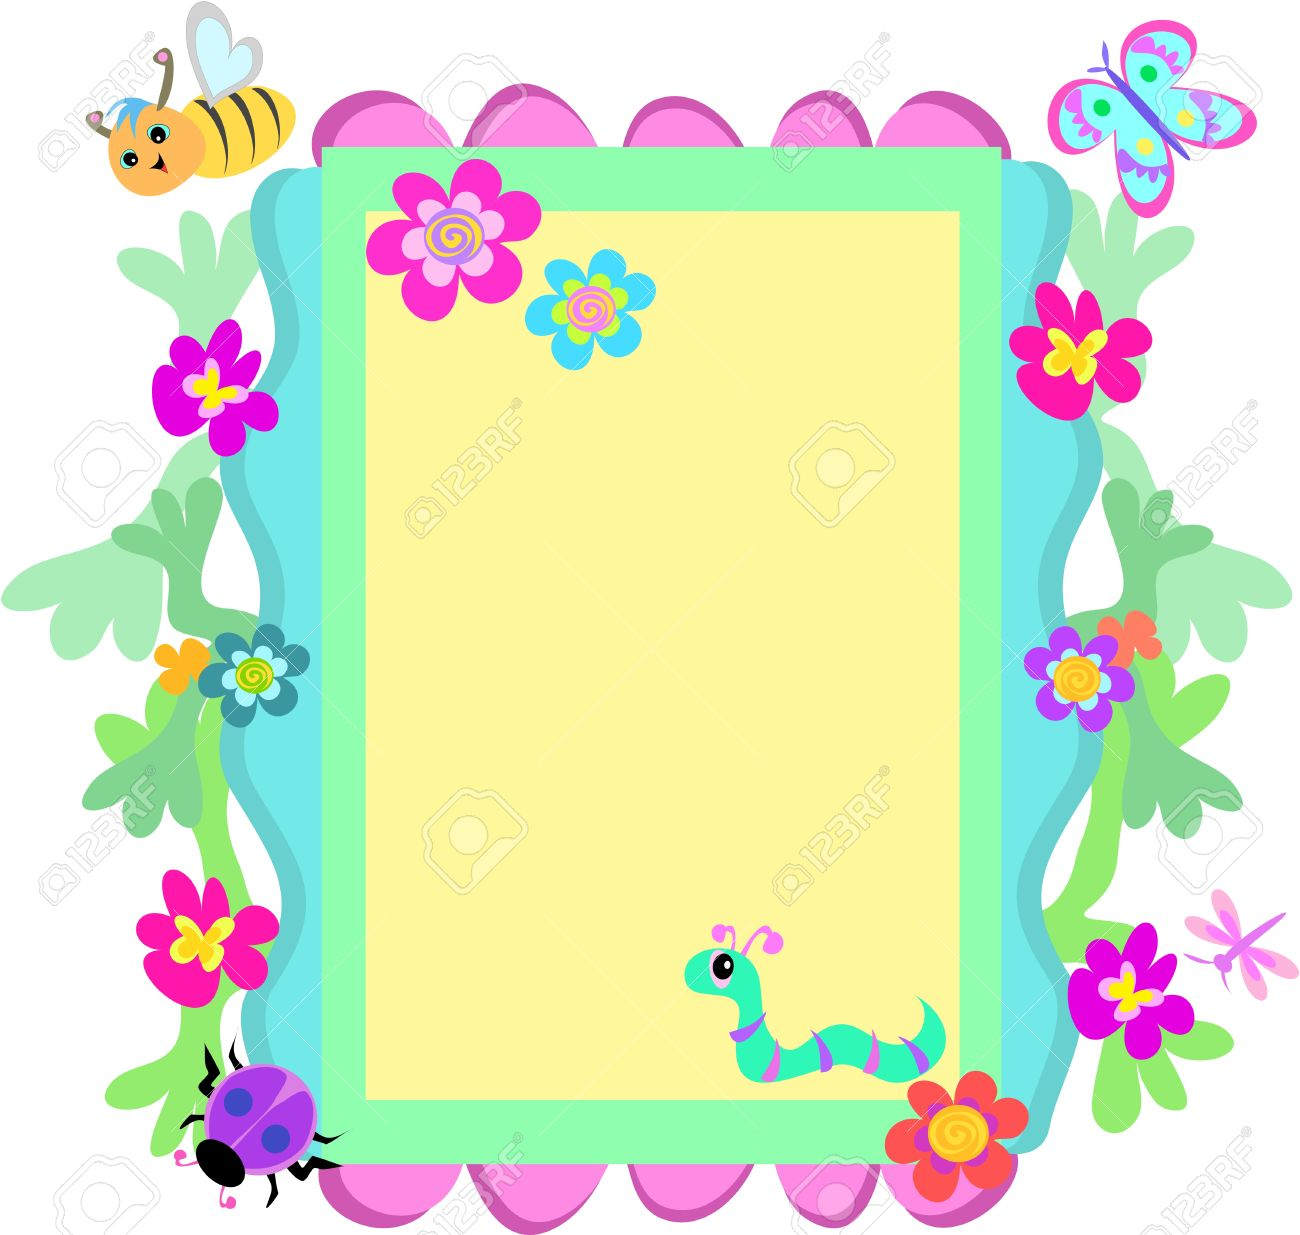 Whimsical Frame Of Flowers And Animals Royalty Free Cliparts